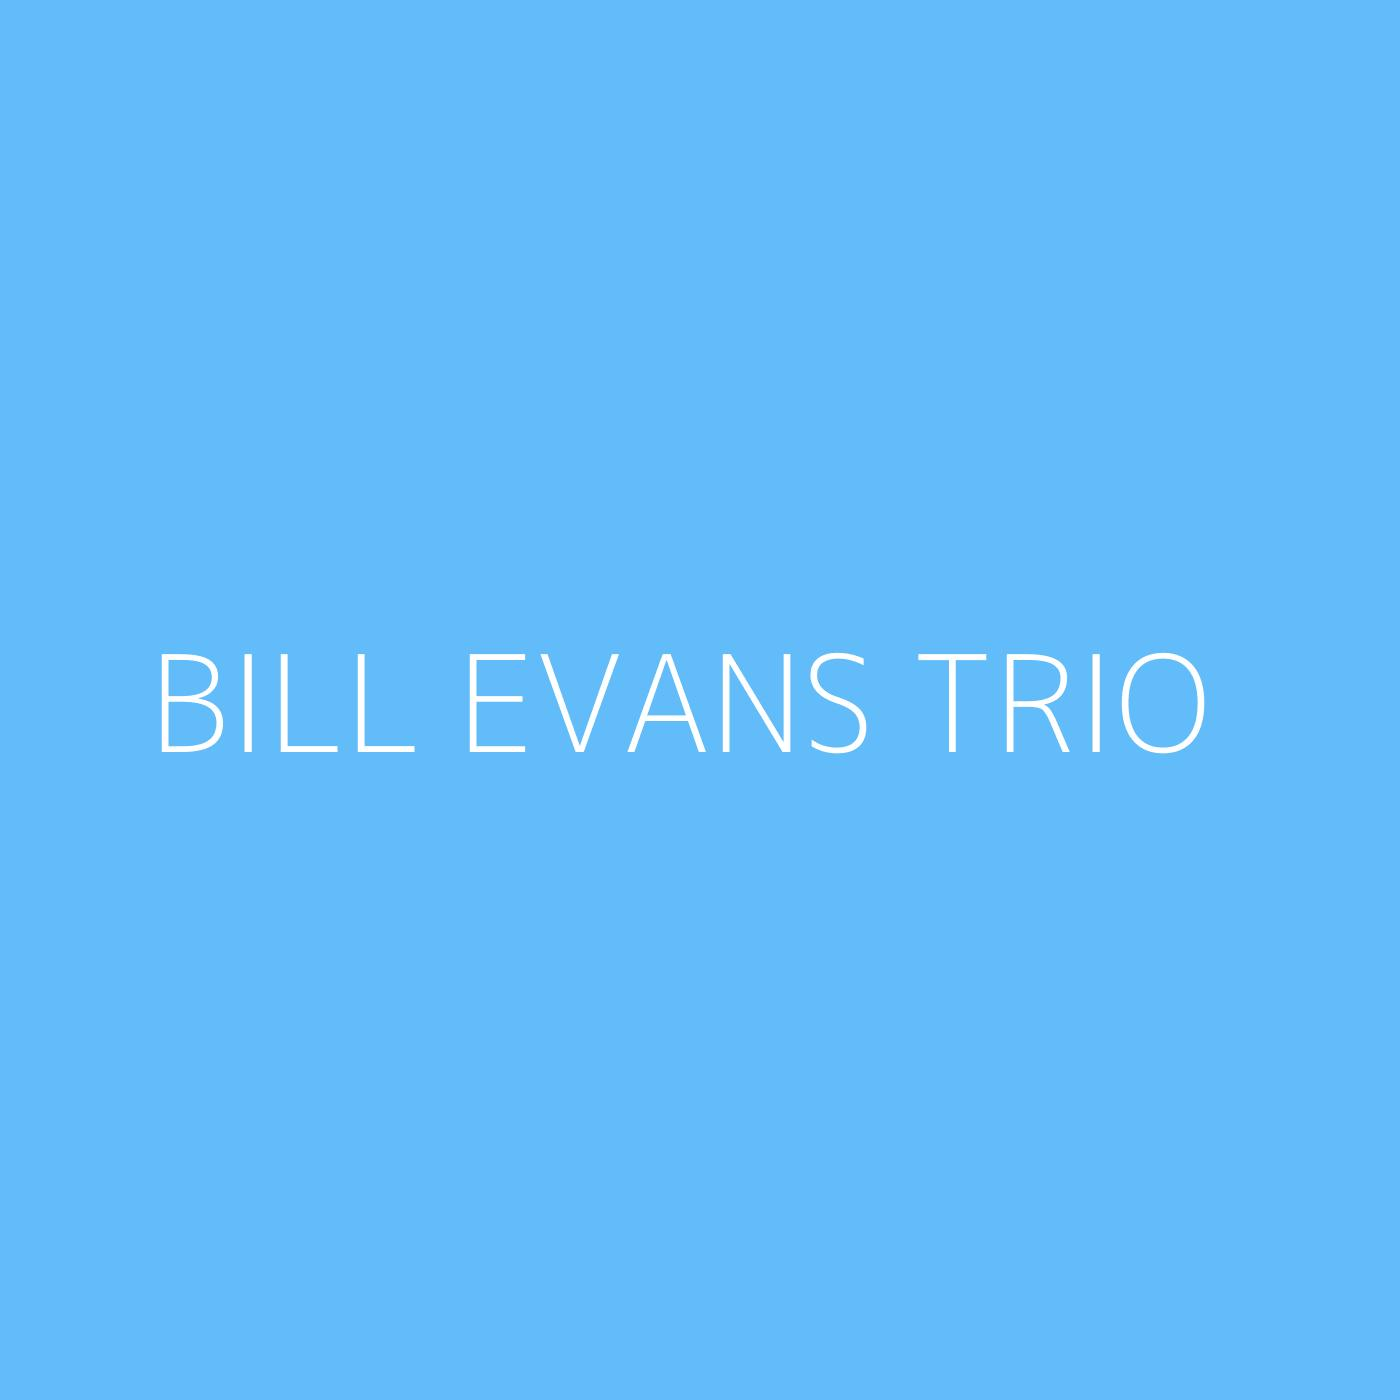 Bill Evans Trio Playlist Artwork